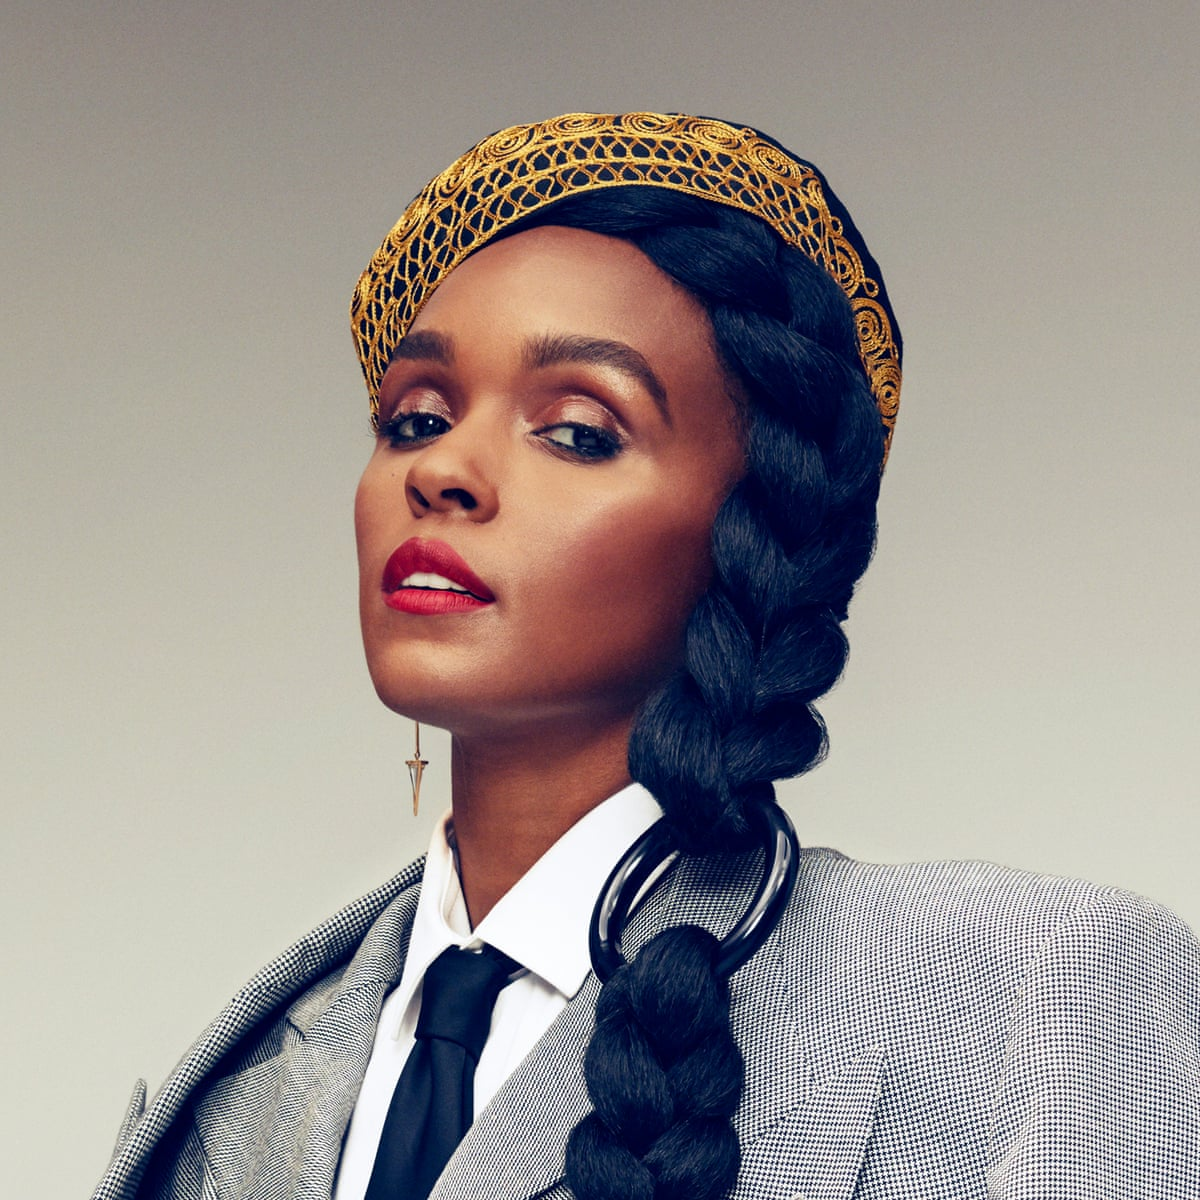 You don't own or control me': Janelle Monáe on her music, politics and  undefinable sexuality   Janelle Monae   The Guardian